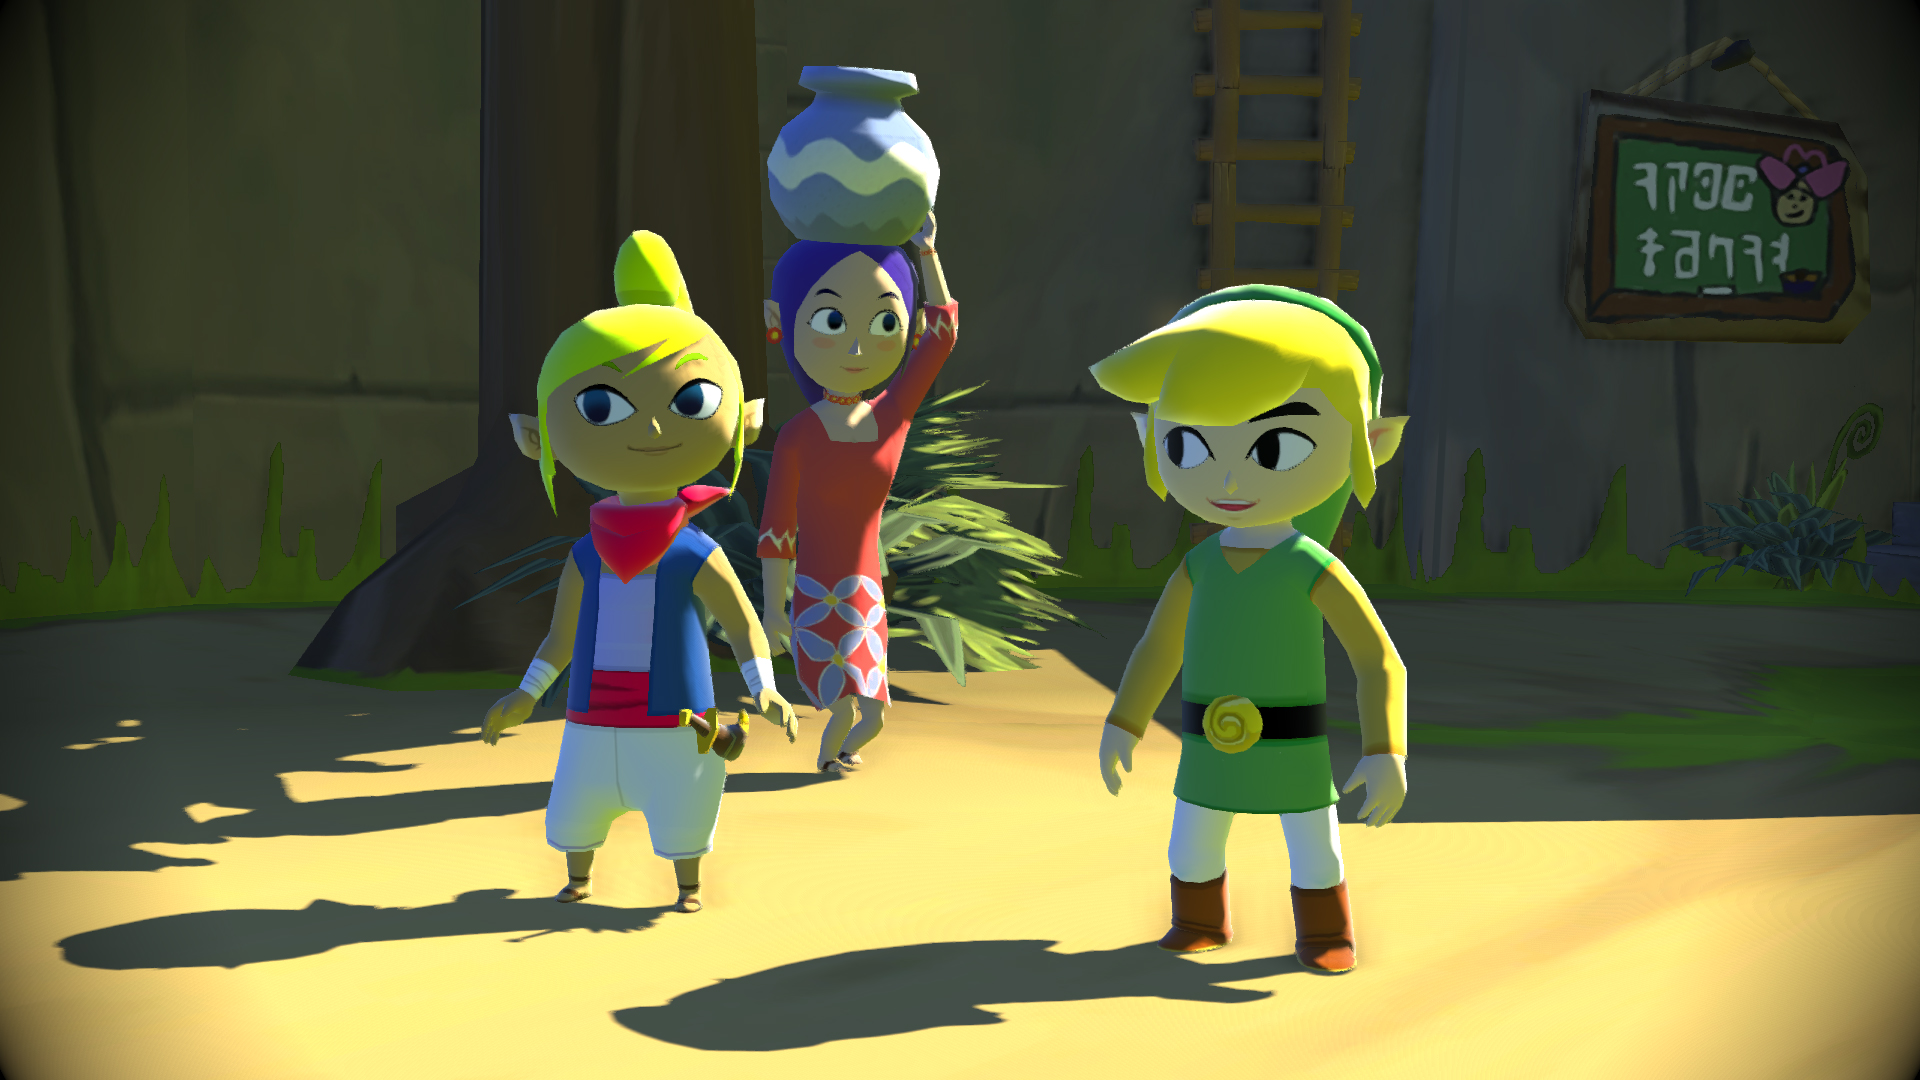 Premiers visuels de The Legend of Zelda : The Wind Waker HD sur WiiU